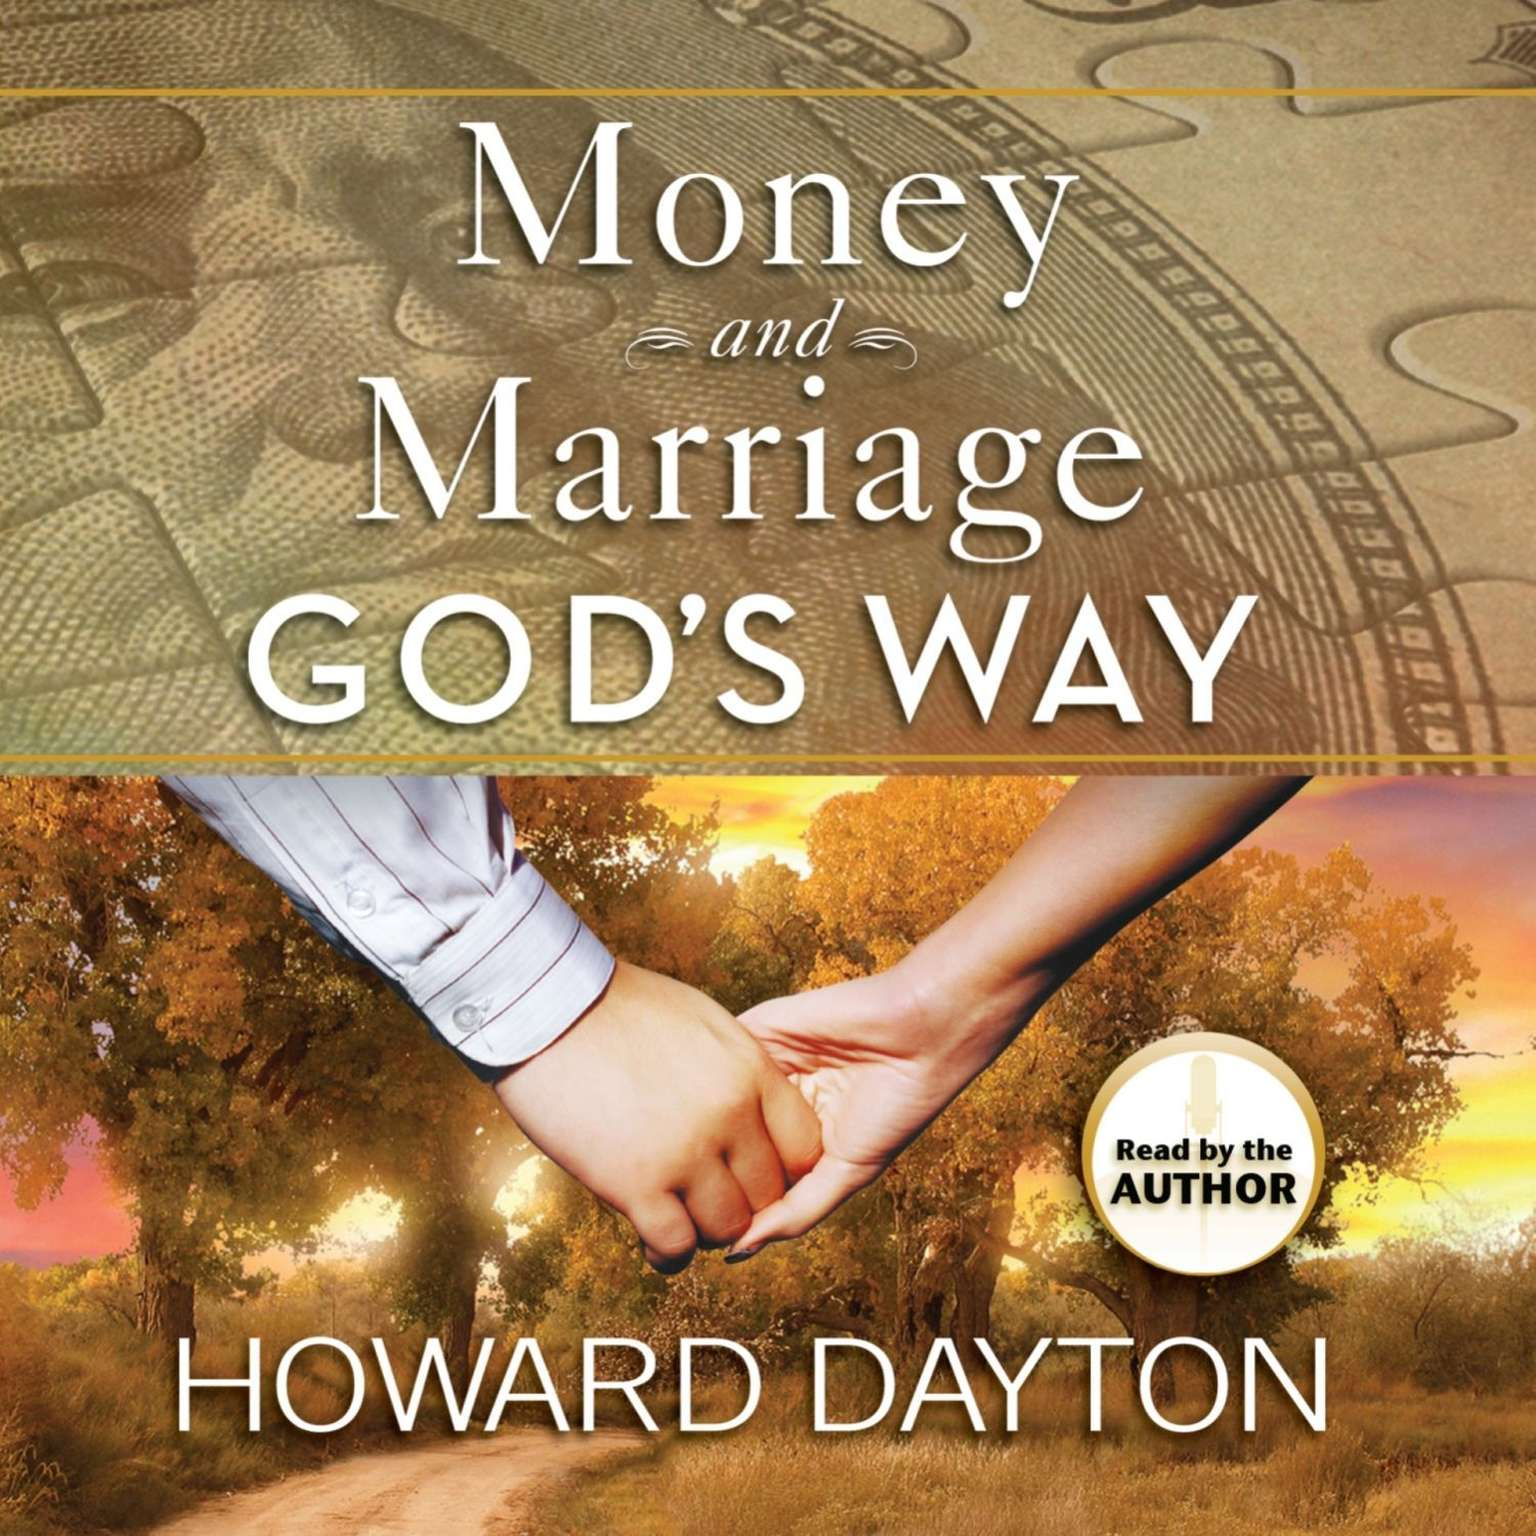 Printable Money and Marriage God's Way Audiobook Cover Art